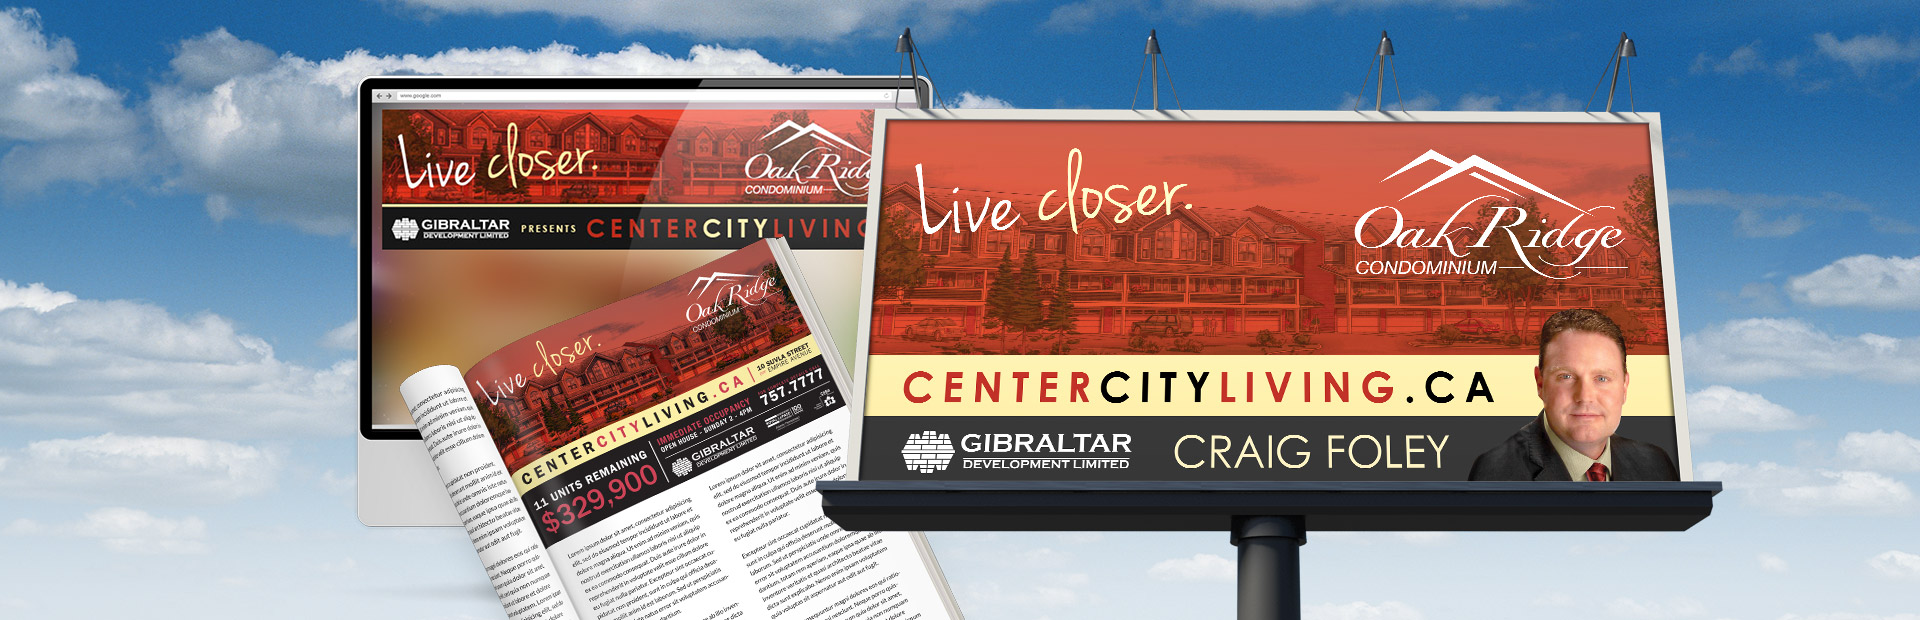 Gibraltar Development's Live Closer Campaign